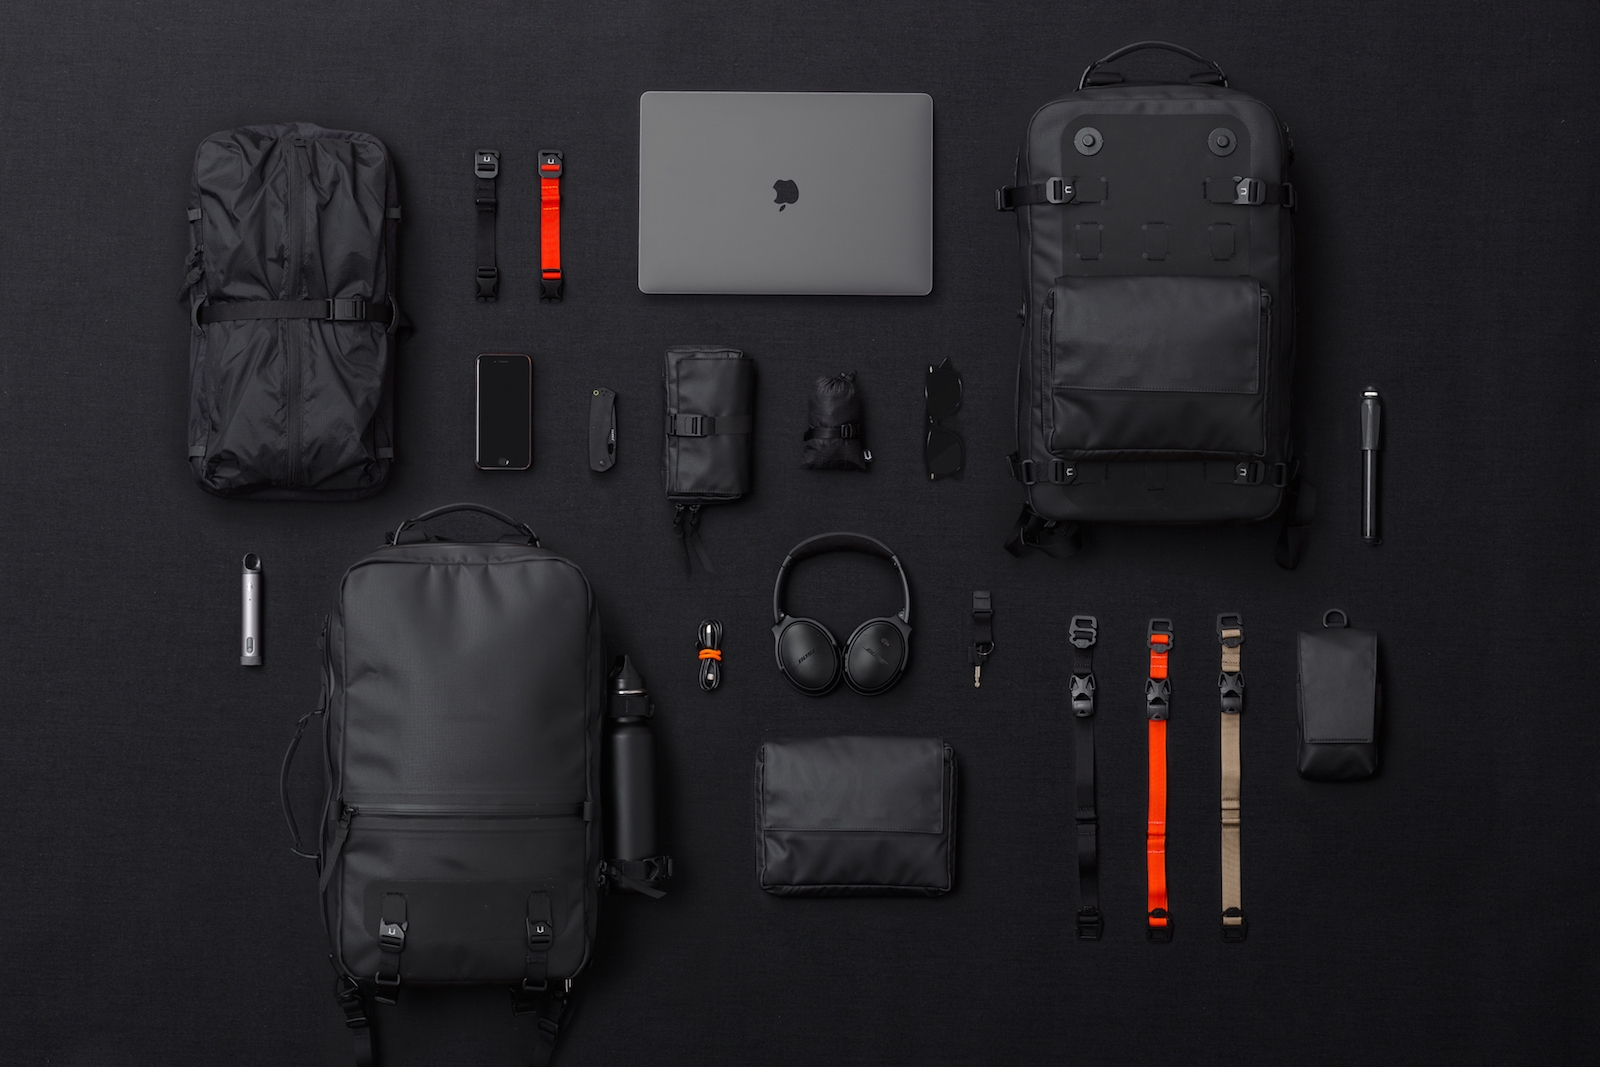 Designers Nike + TNF launch lin - blackember | ello